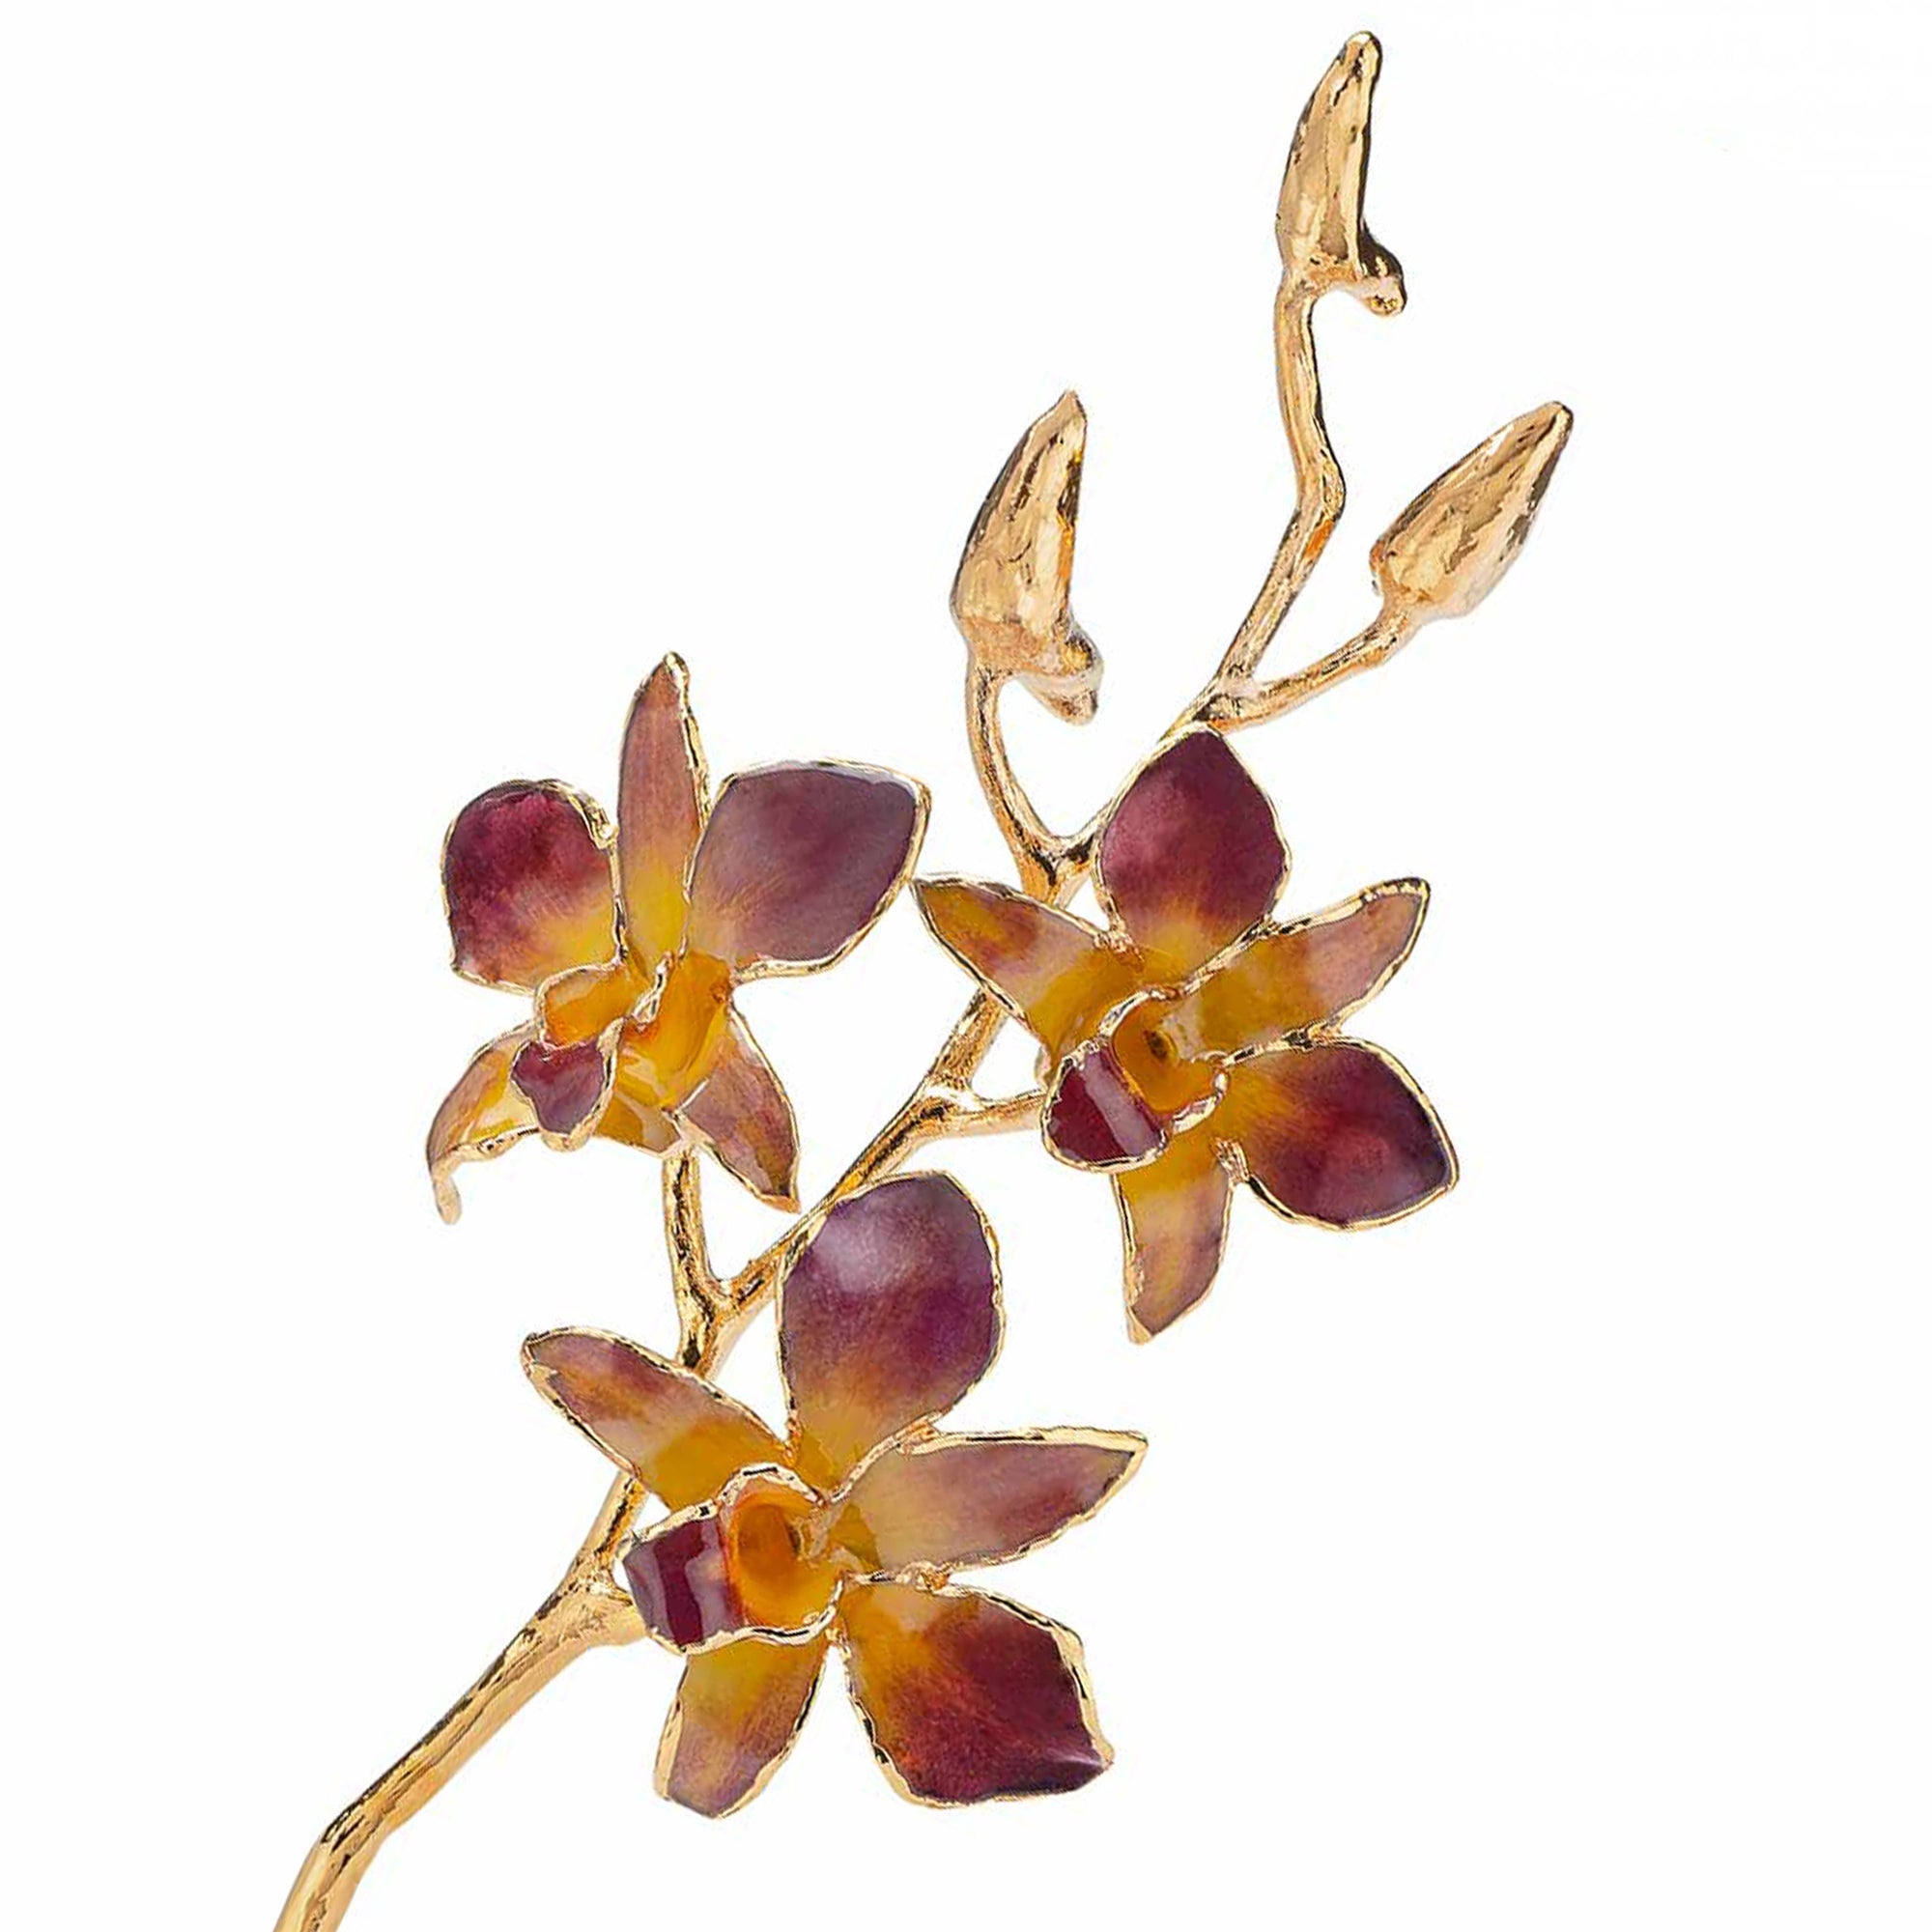 24K Gold Dipped Orchid in Lilac Yellow view of gold stem and flowers